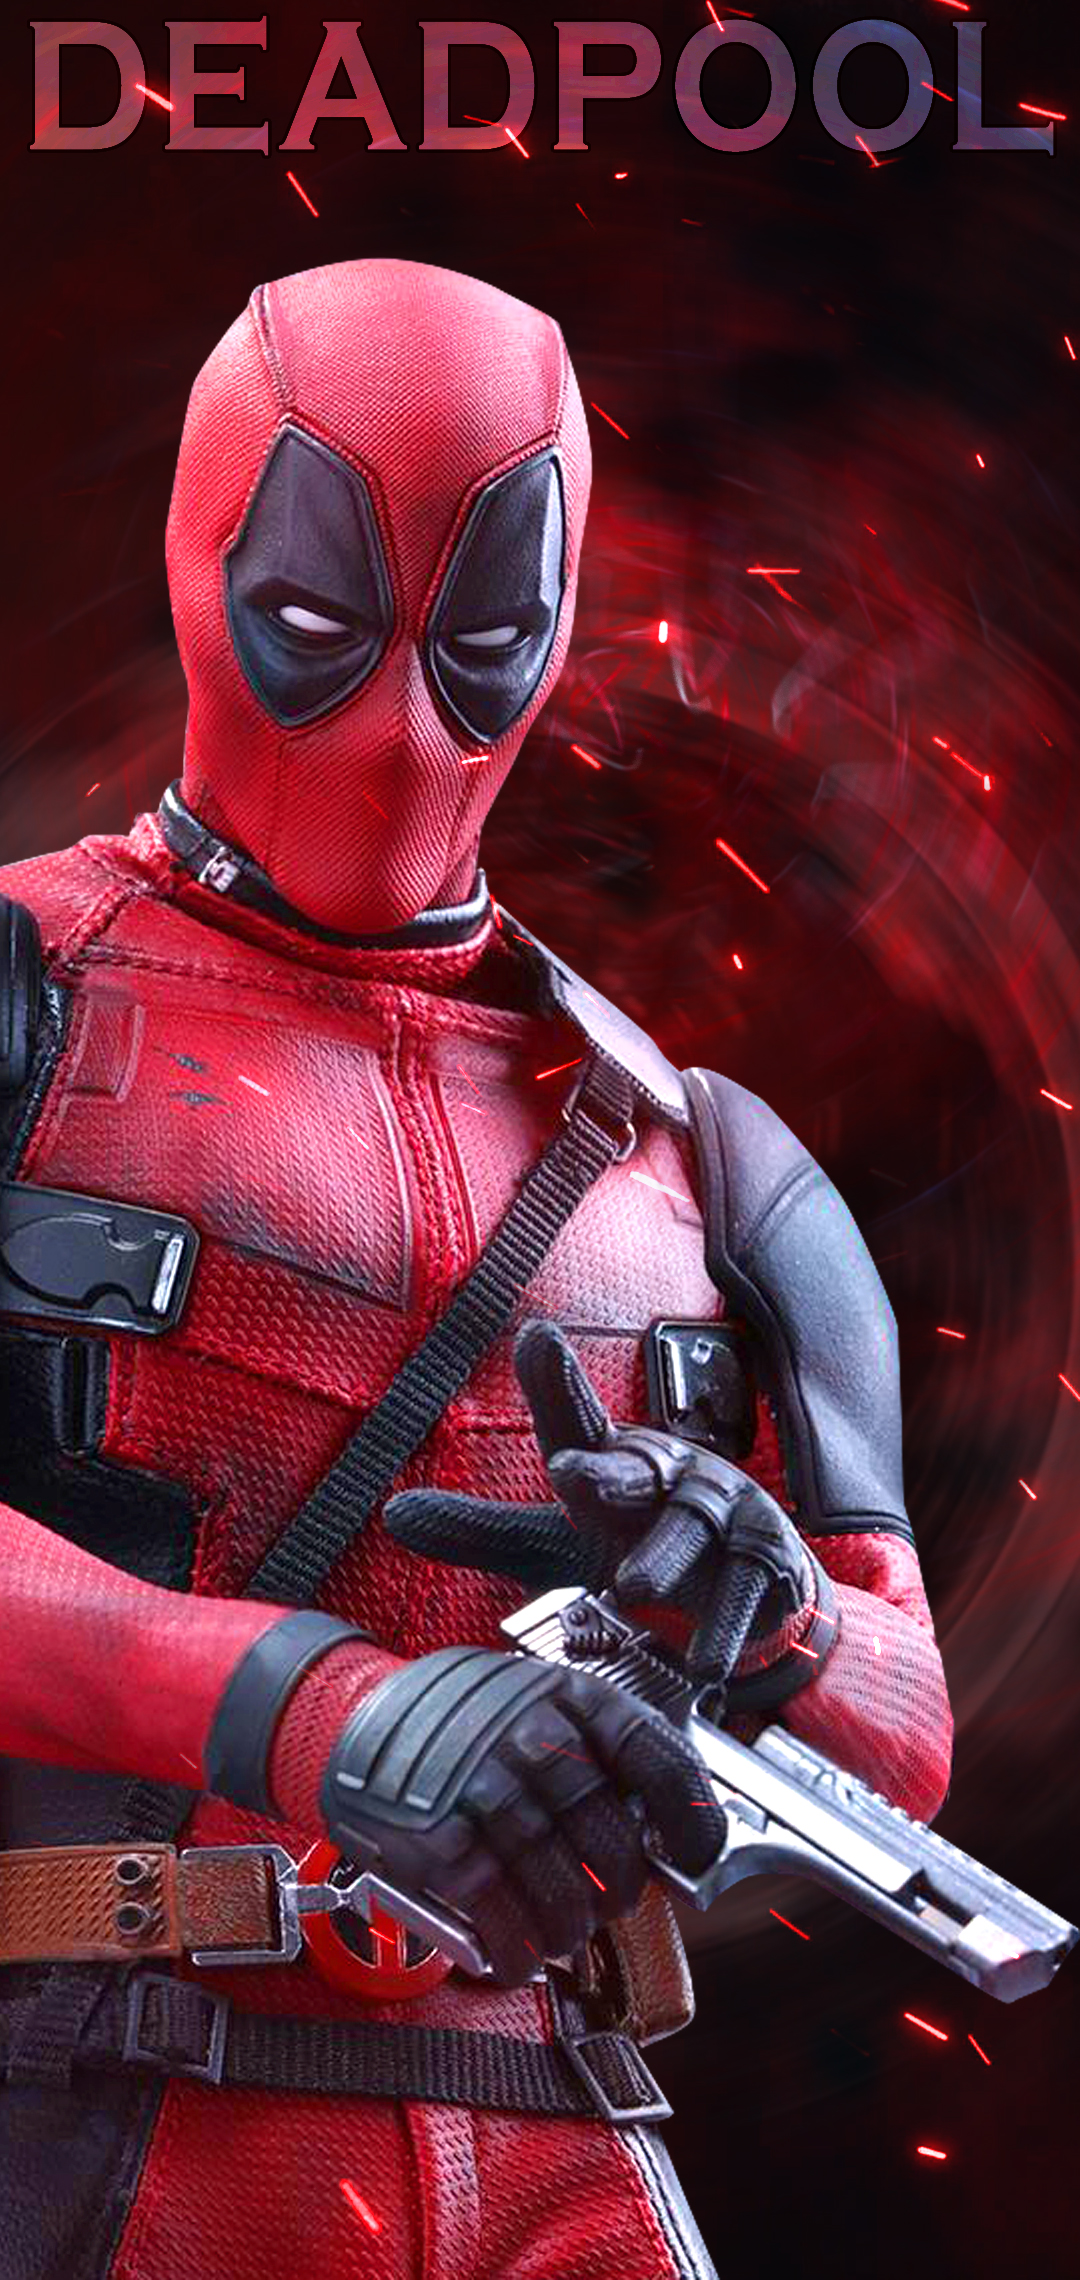 Deadpool Hd Wallpaper For Iphone And Android   Android Wallpaper